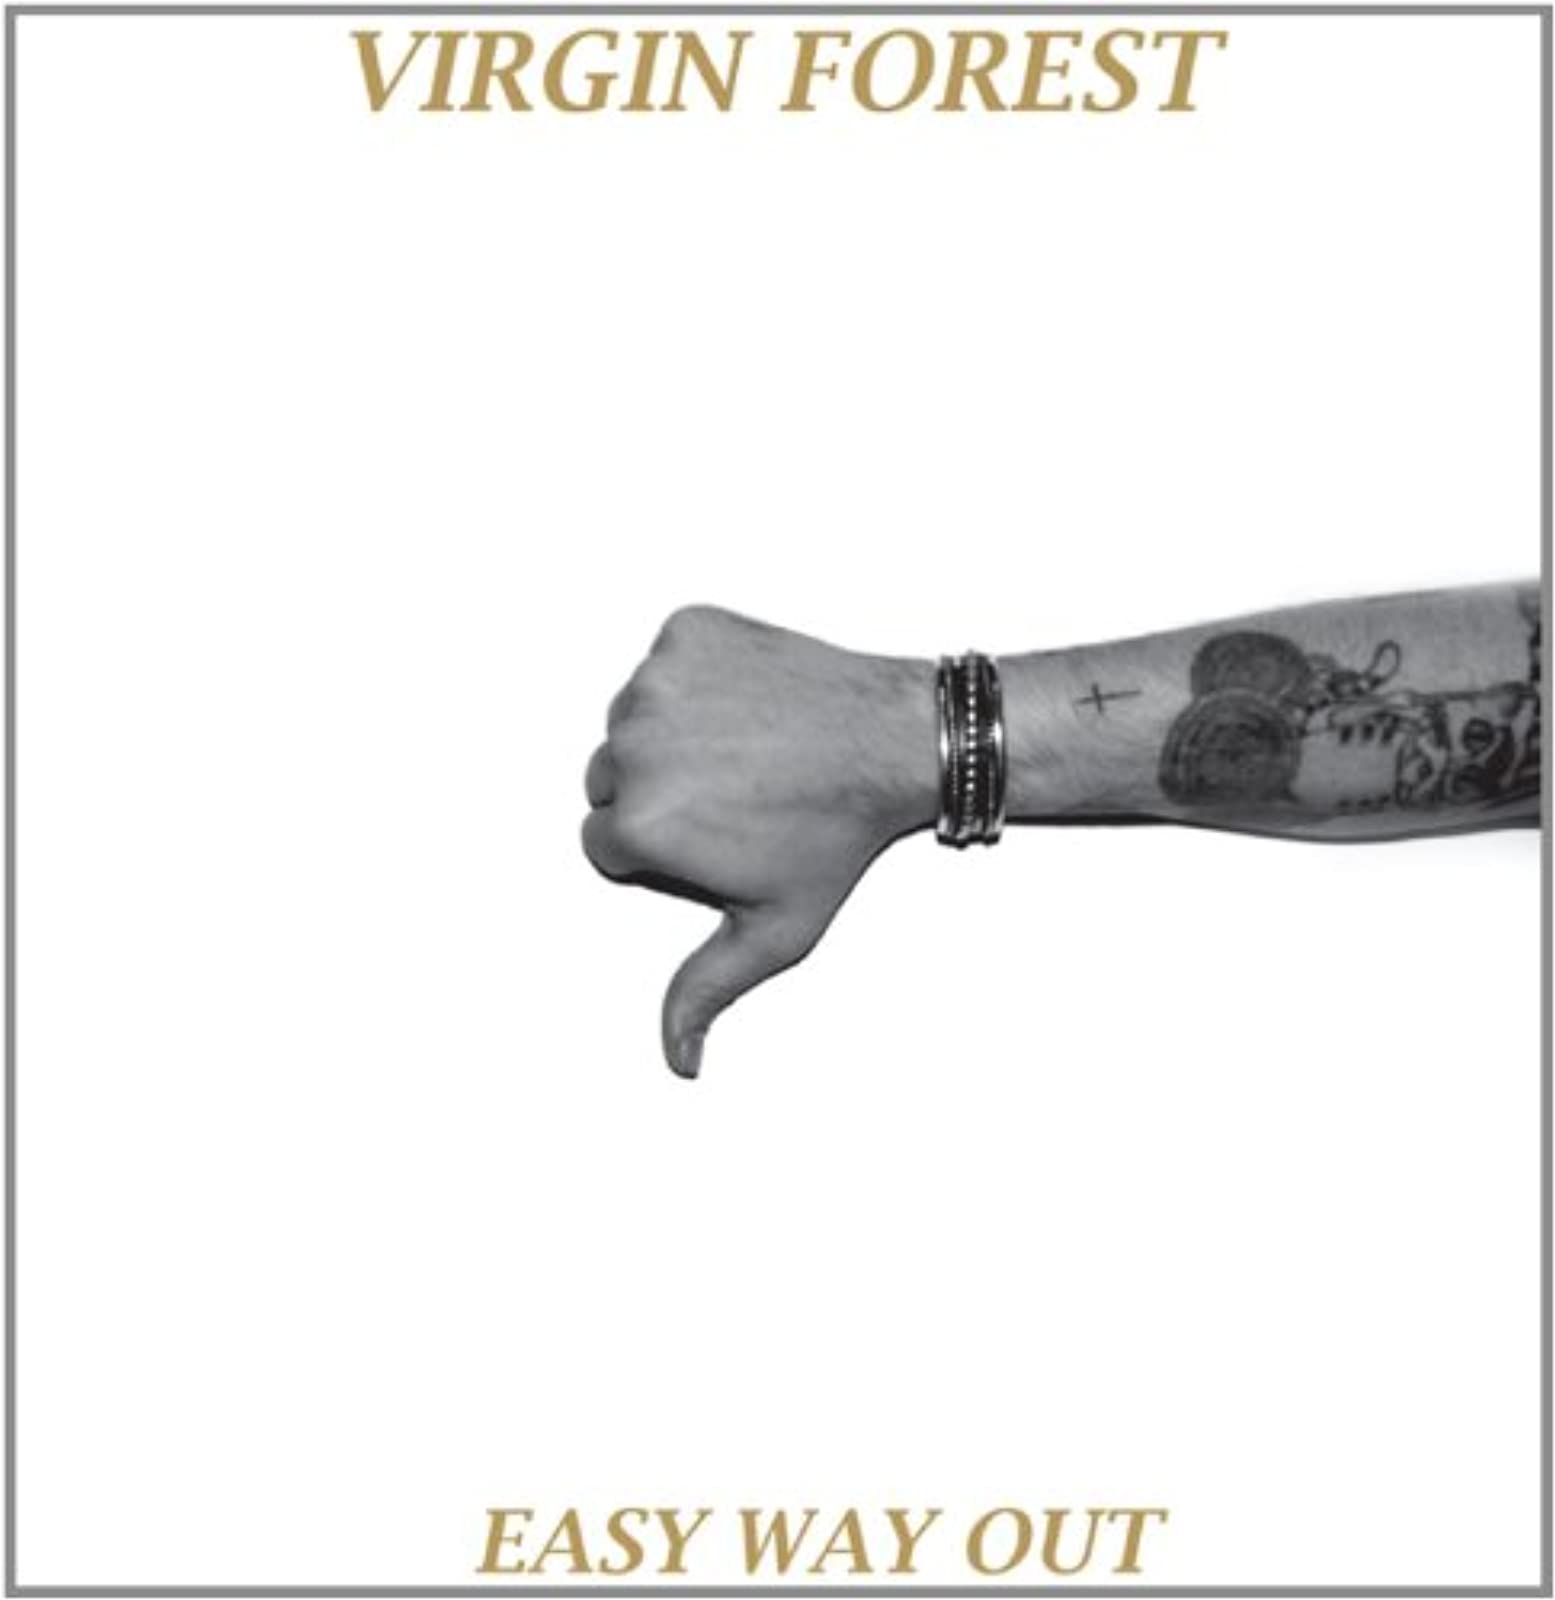 Easy Way Out Record By Virgin Forest On Vinyl